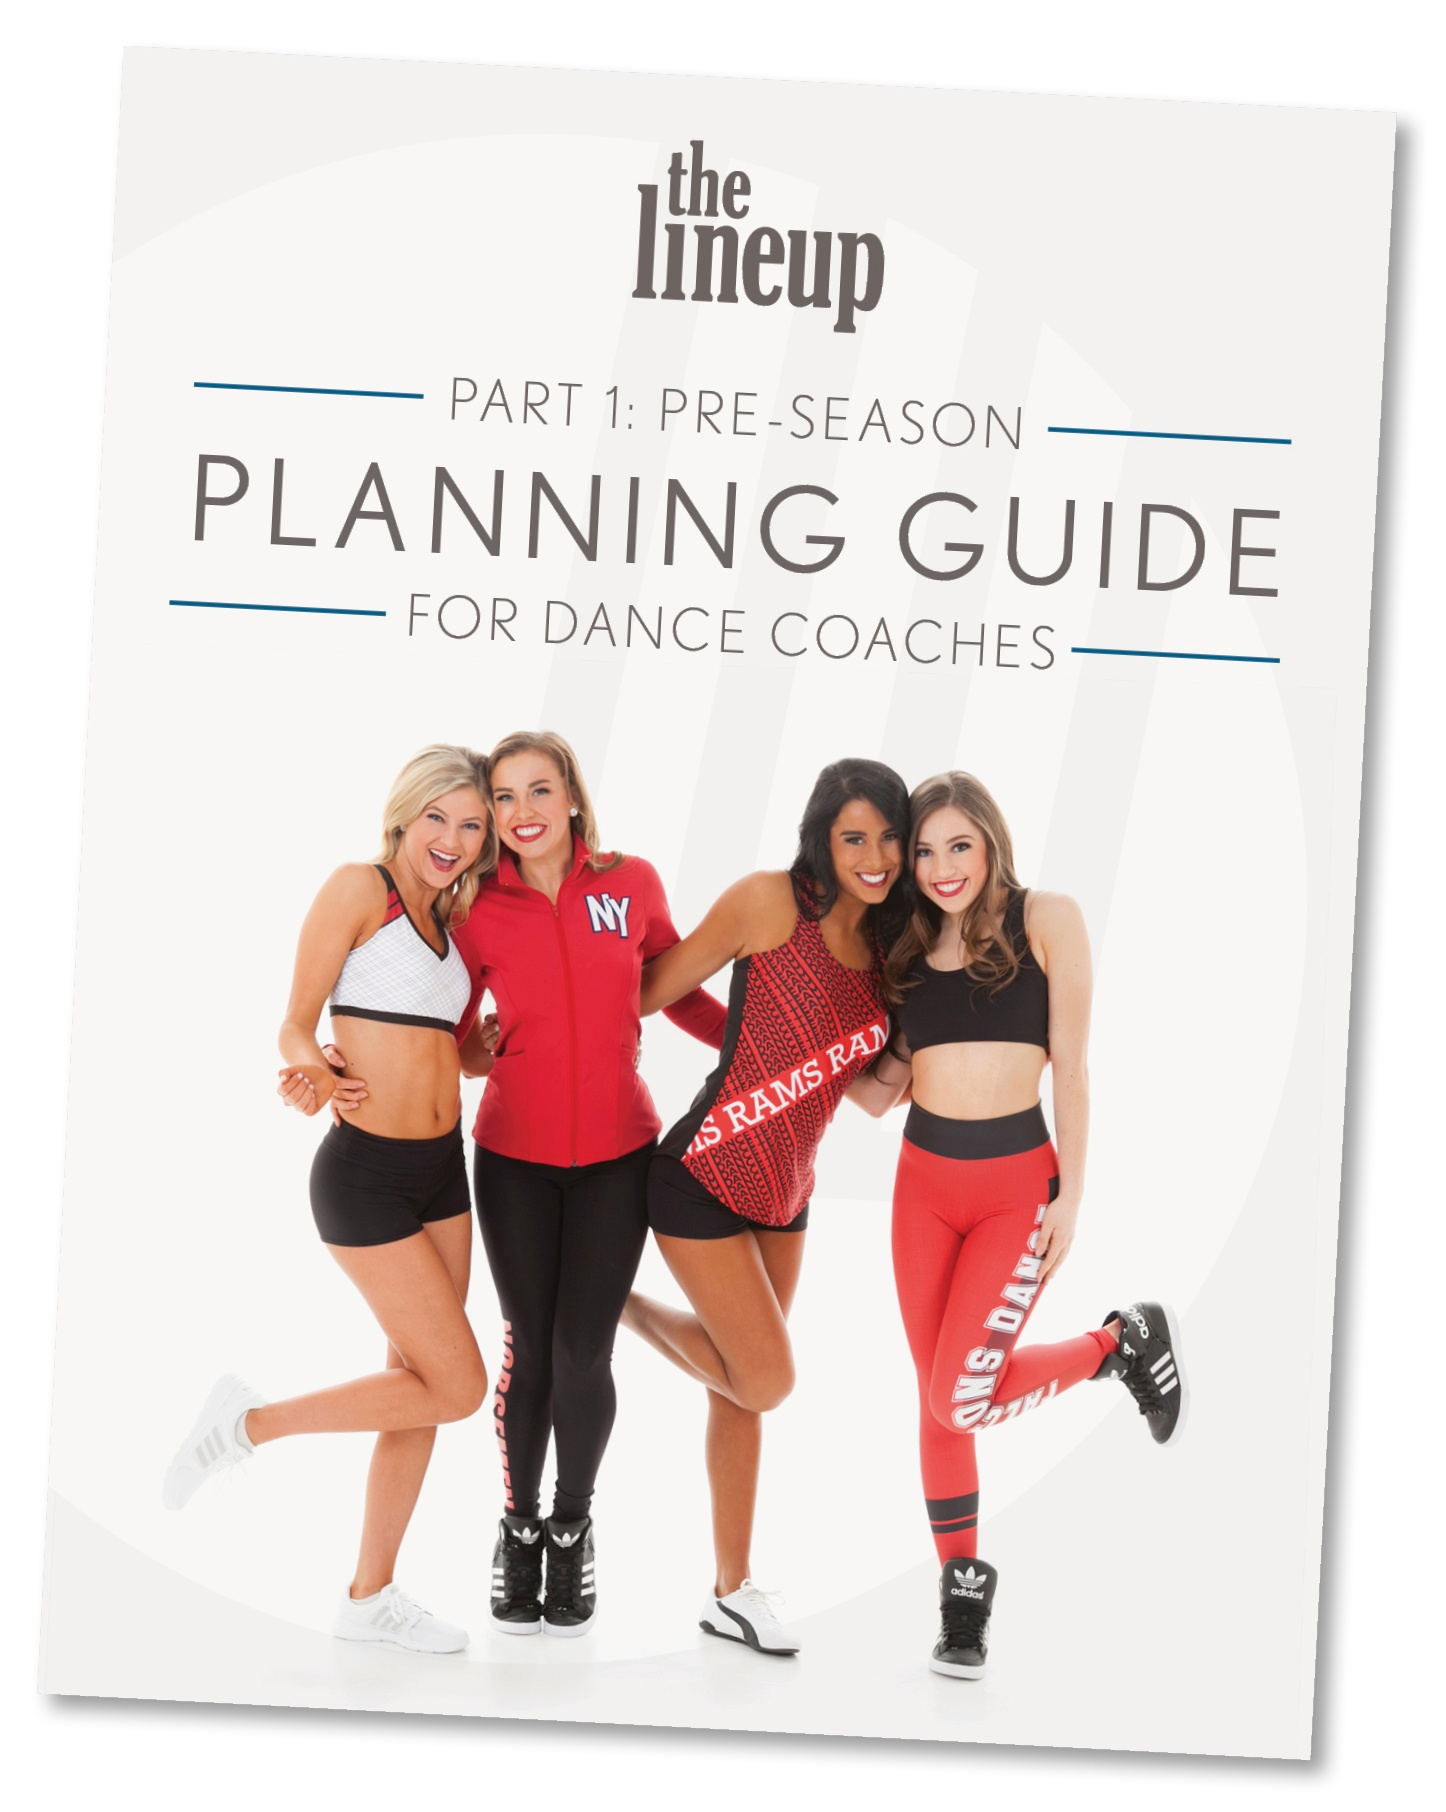 Planning Guide Cover2.jpg